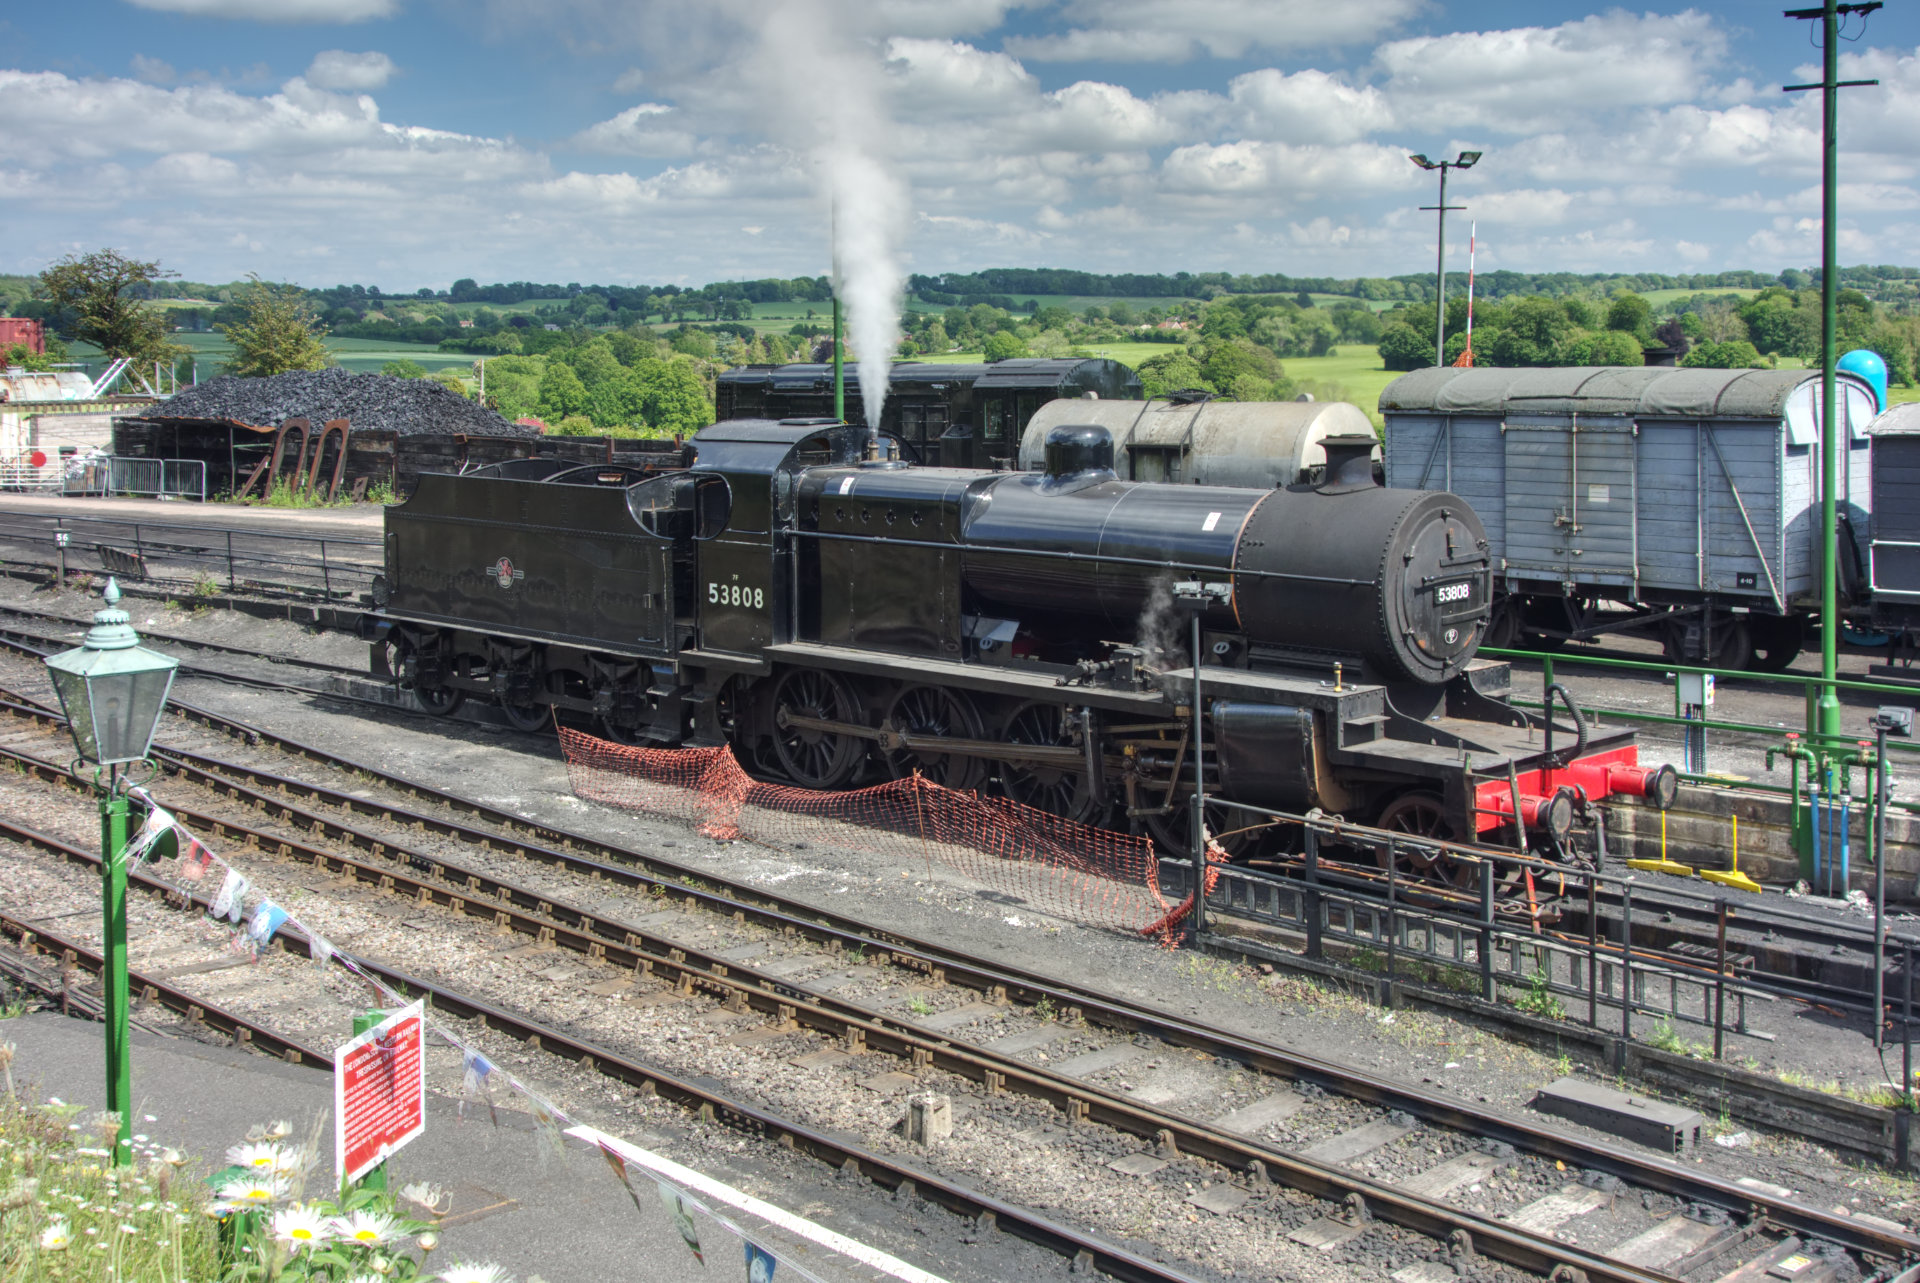 53808 on a steam test at Ropley